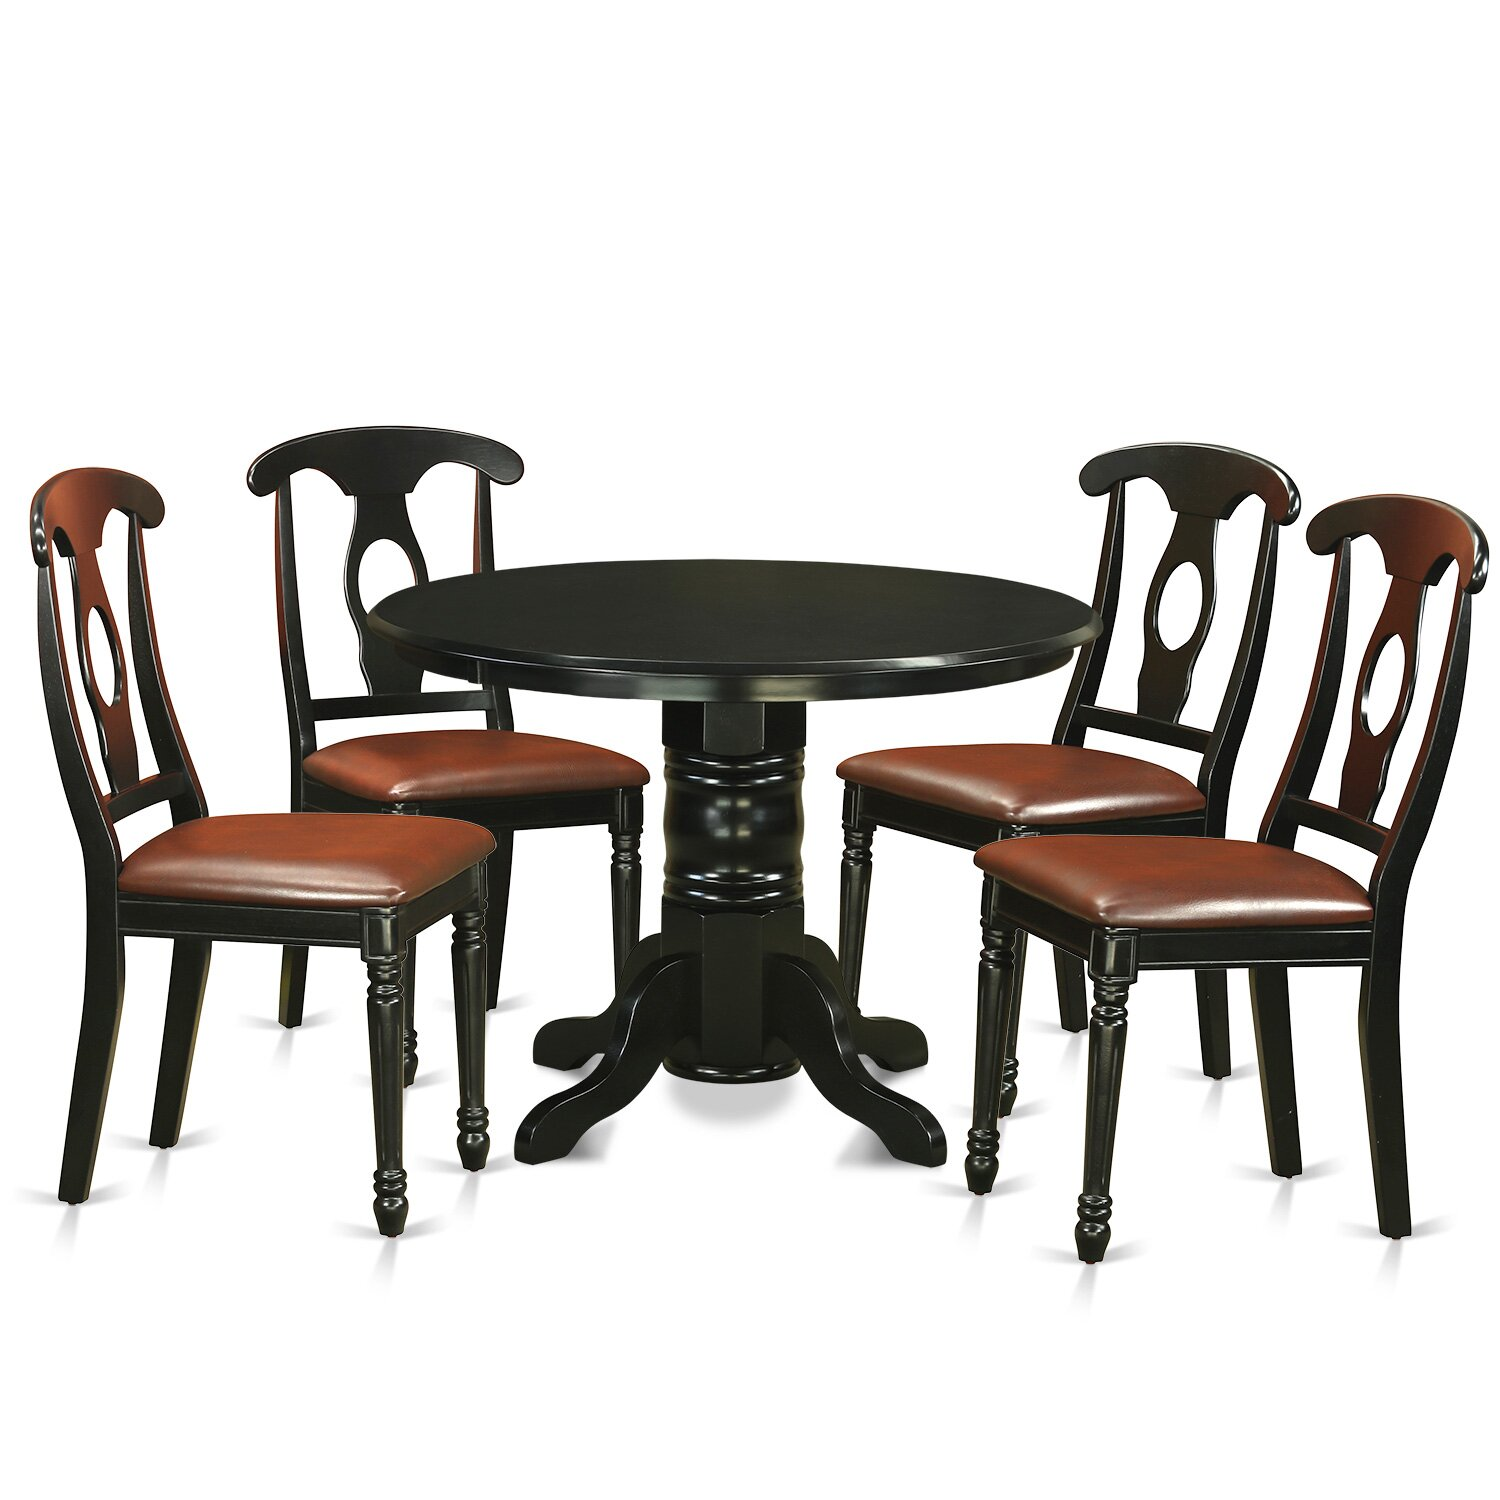 East west shelton 5 piece dining set reviews wayfair for Kitchen dining sets